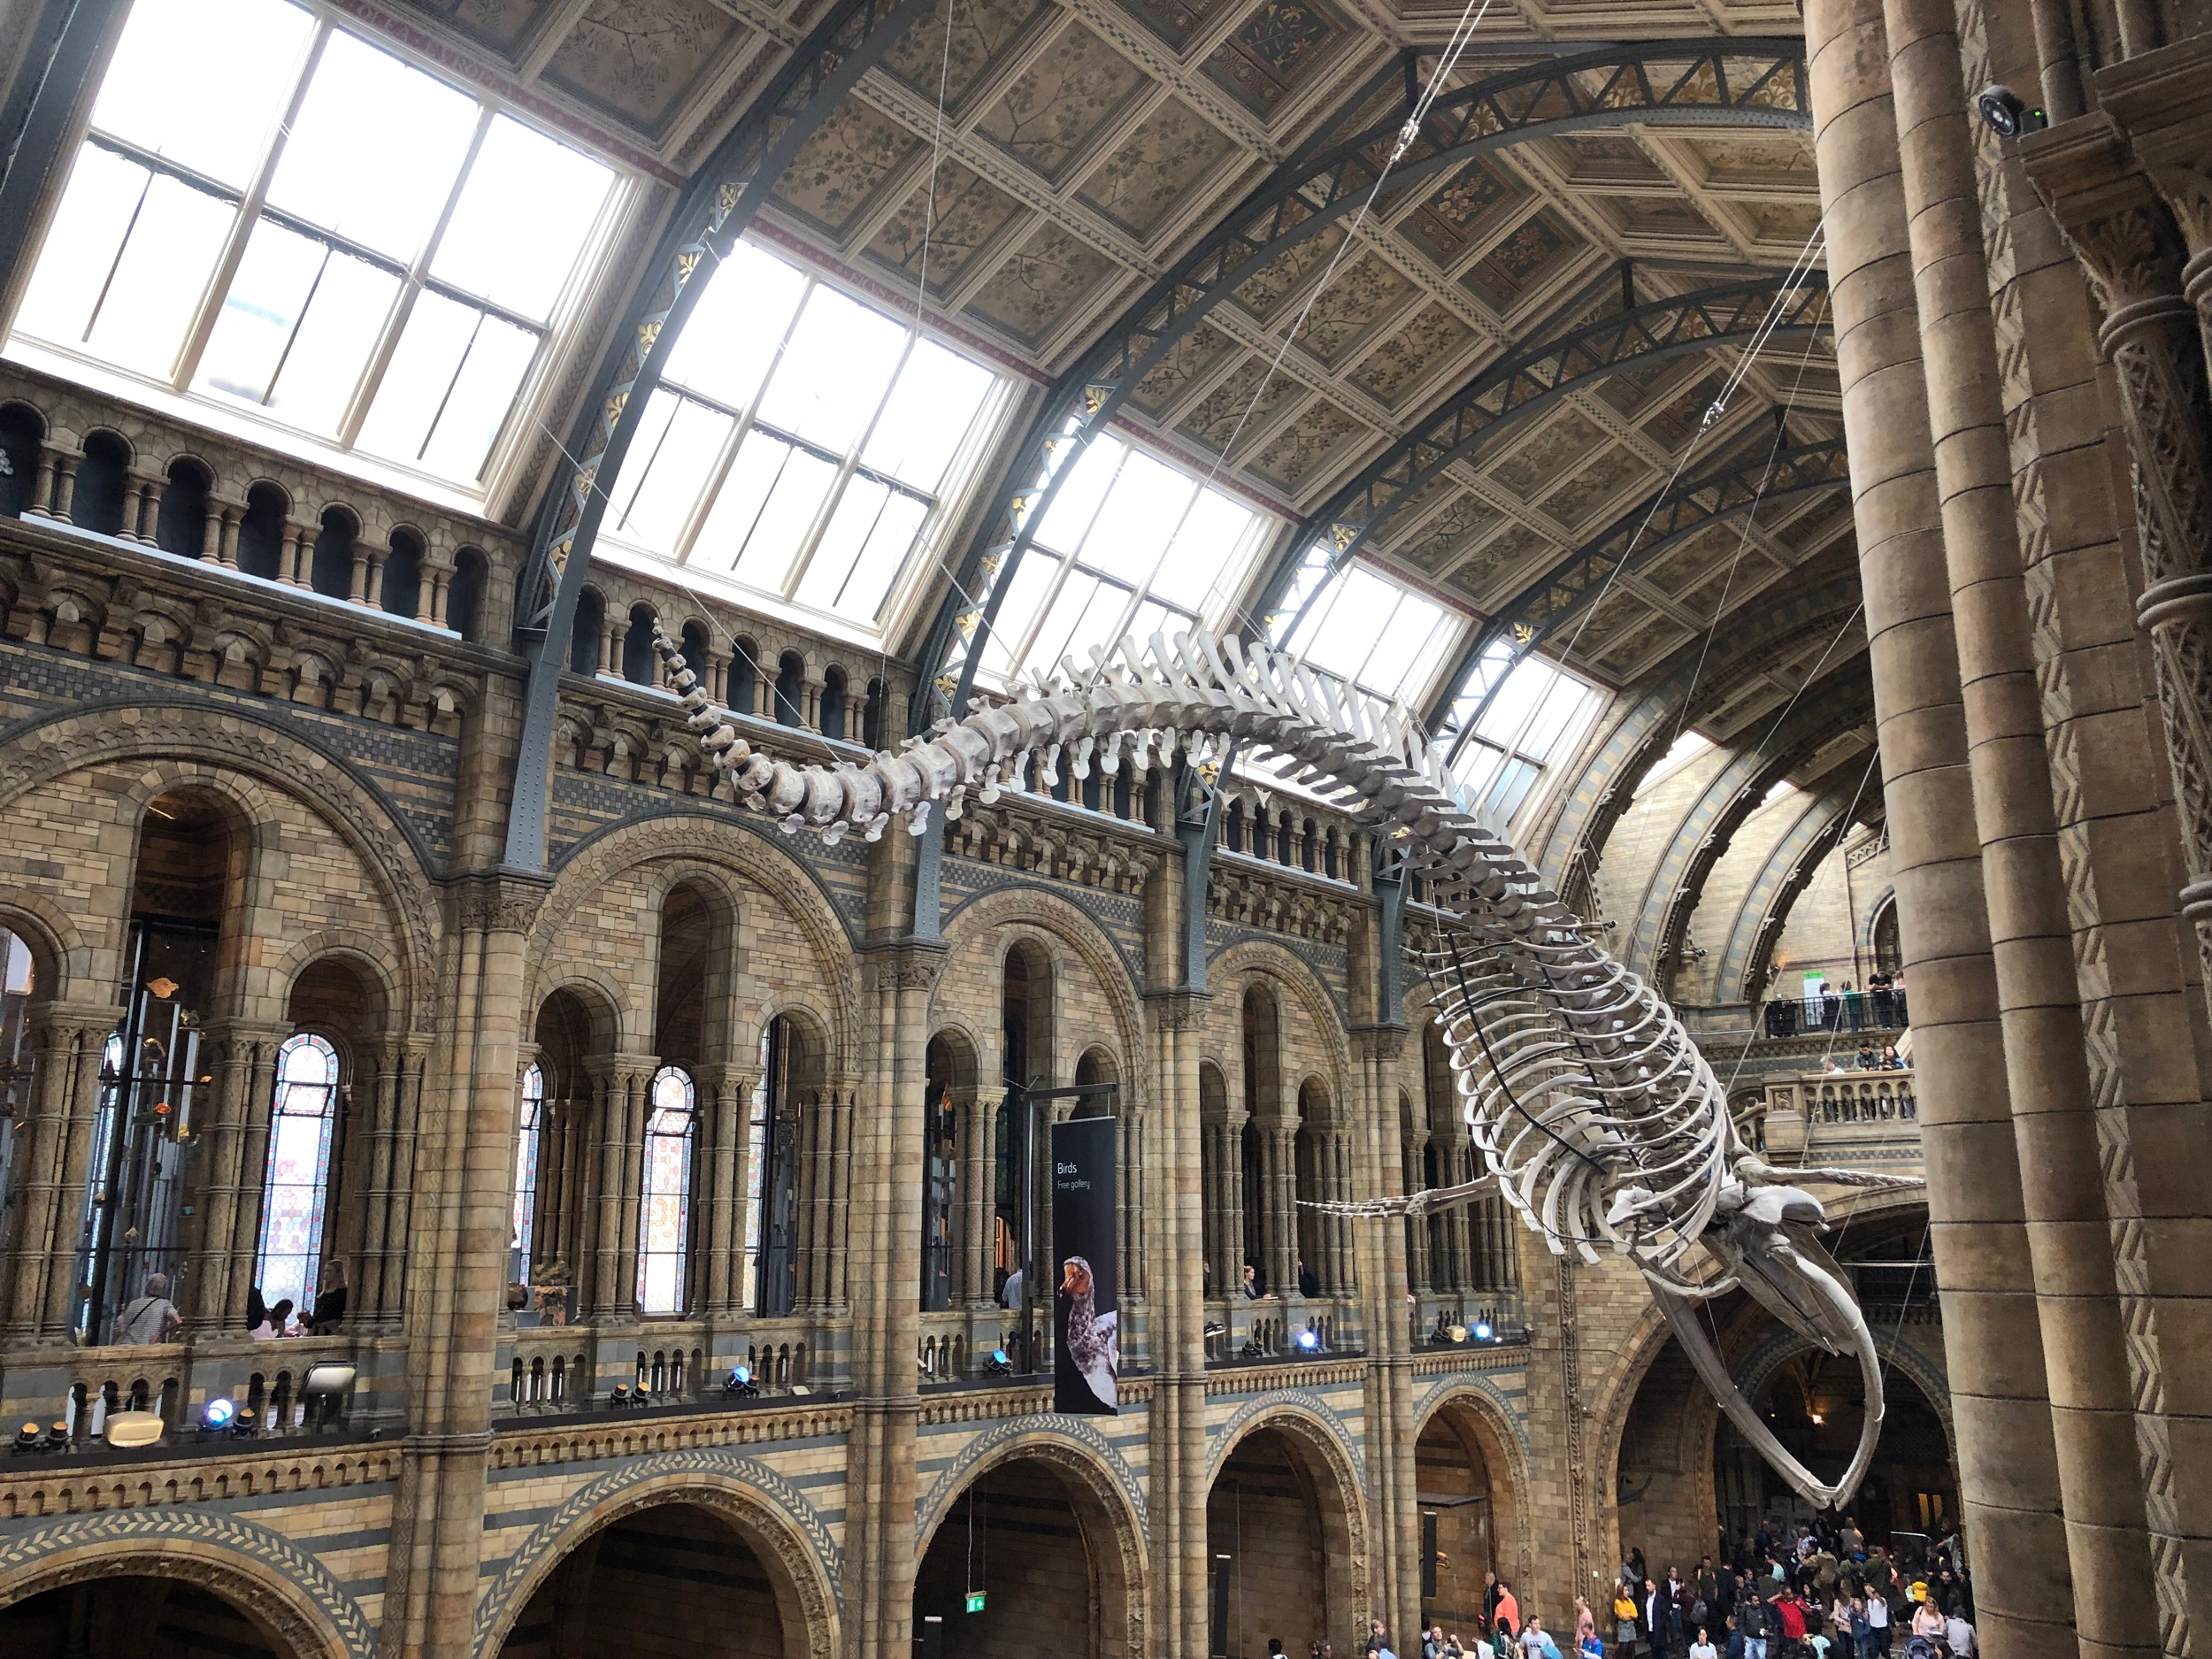 The Natural History Museum is one of my favourite places in the world. The building is incredible. And there's a cafe that sells one of the best carrot cakes I've ever had, I have it every time.